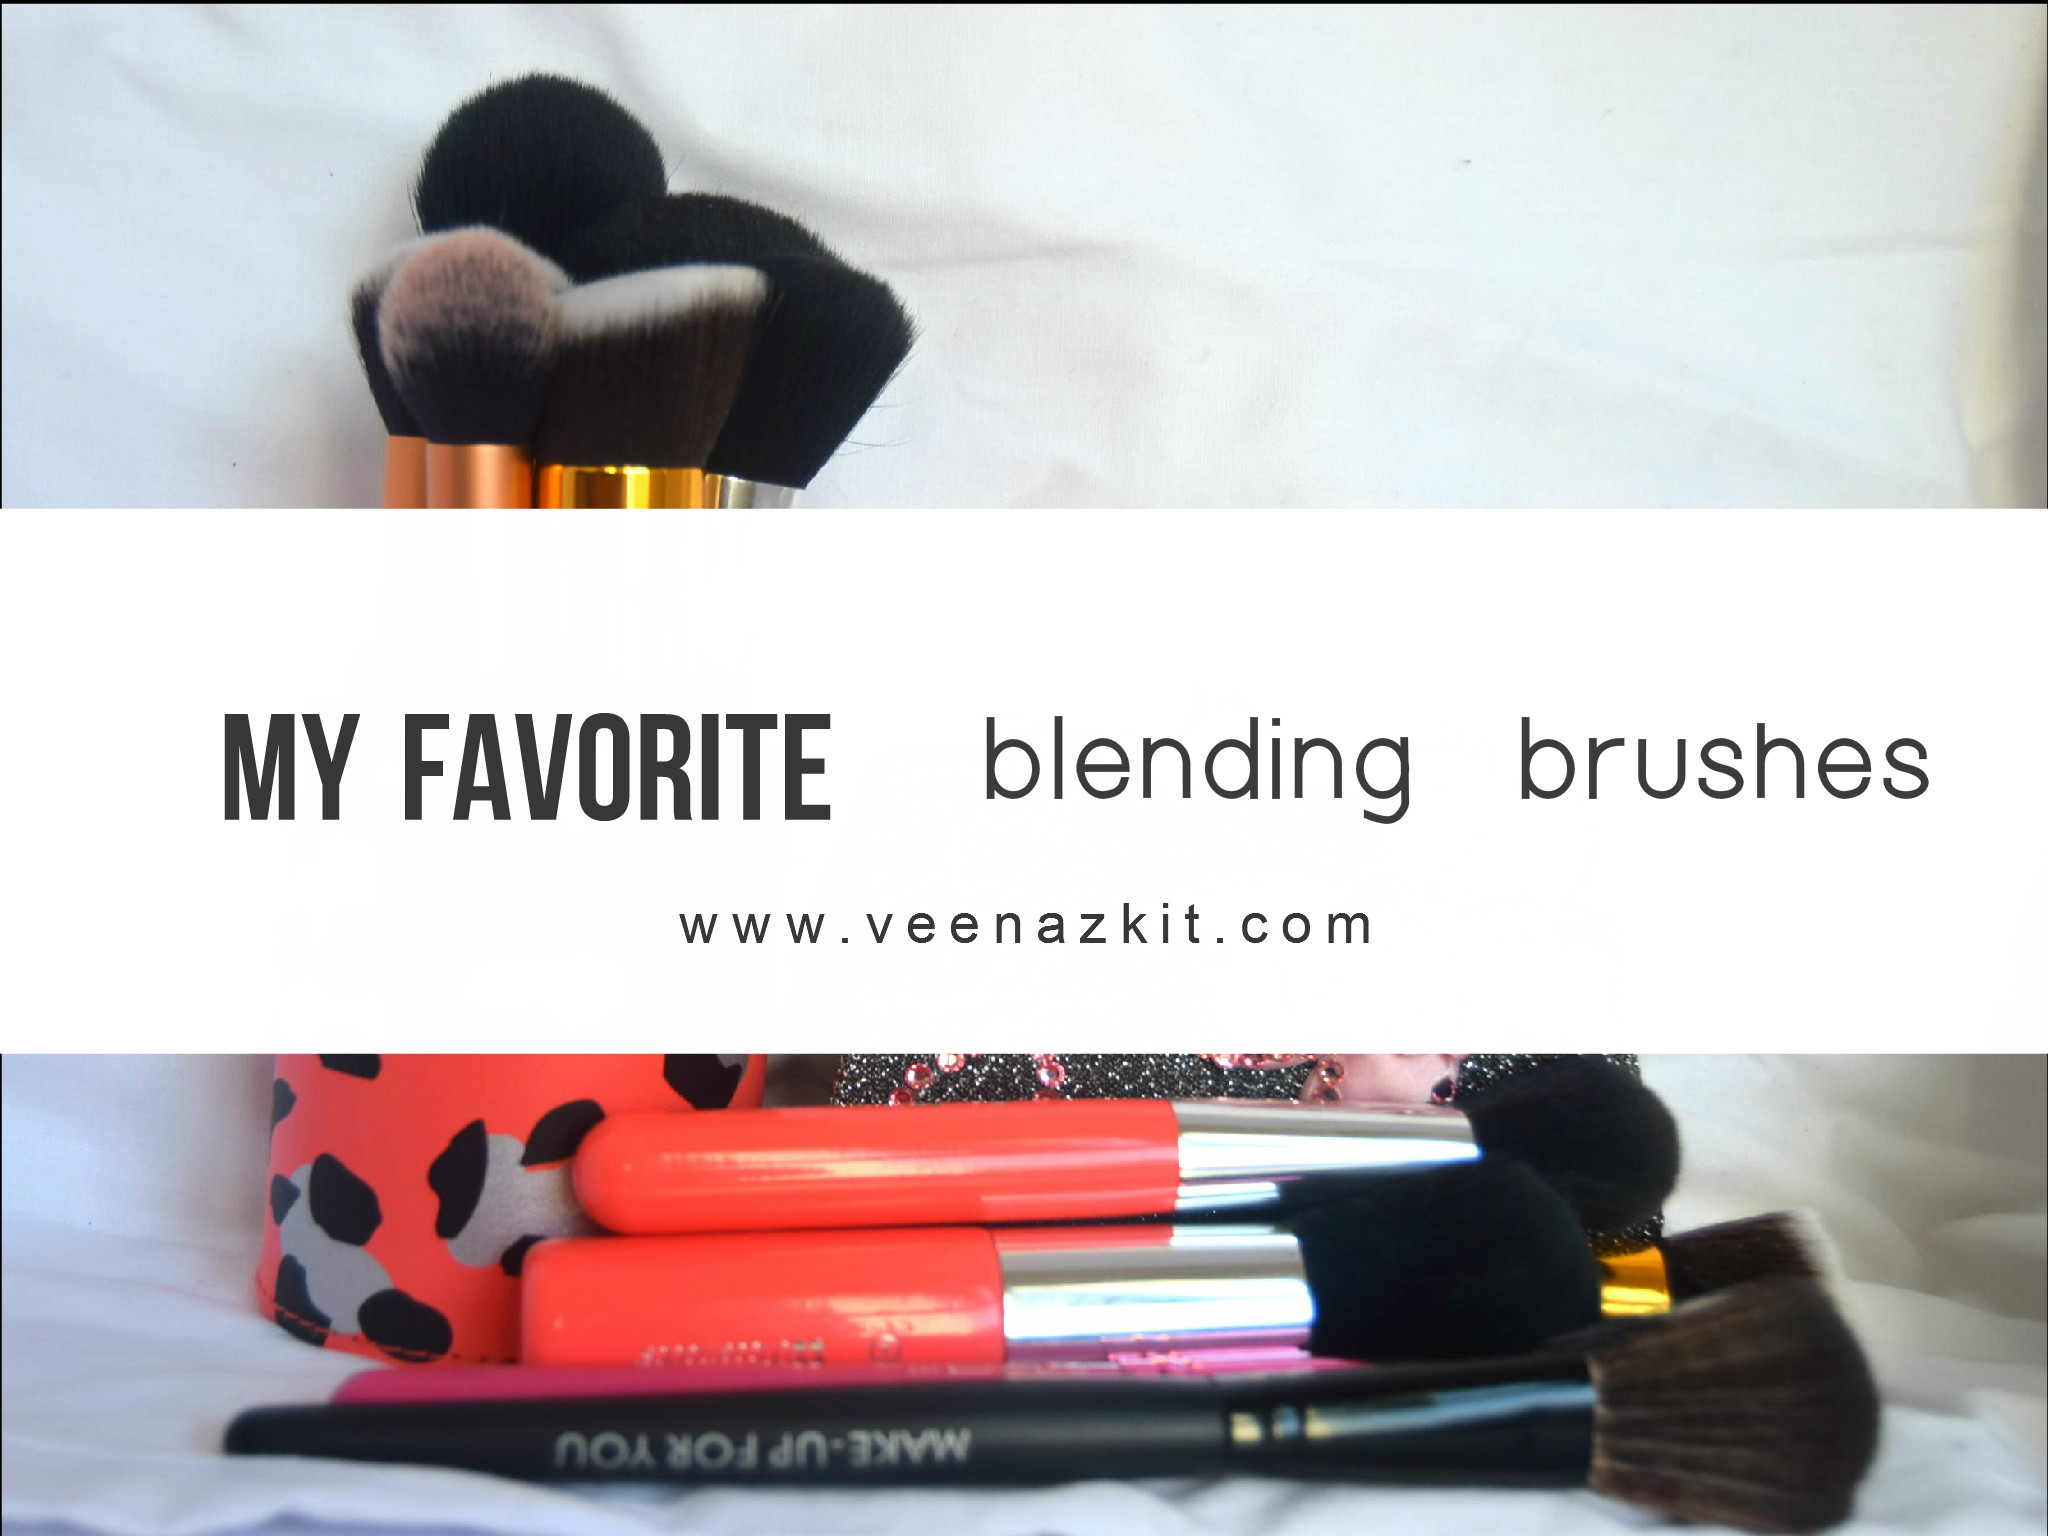 My Favorite Blending Brushes